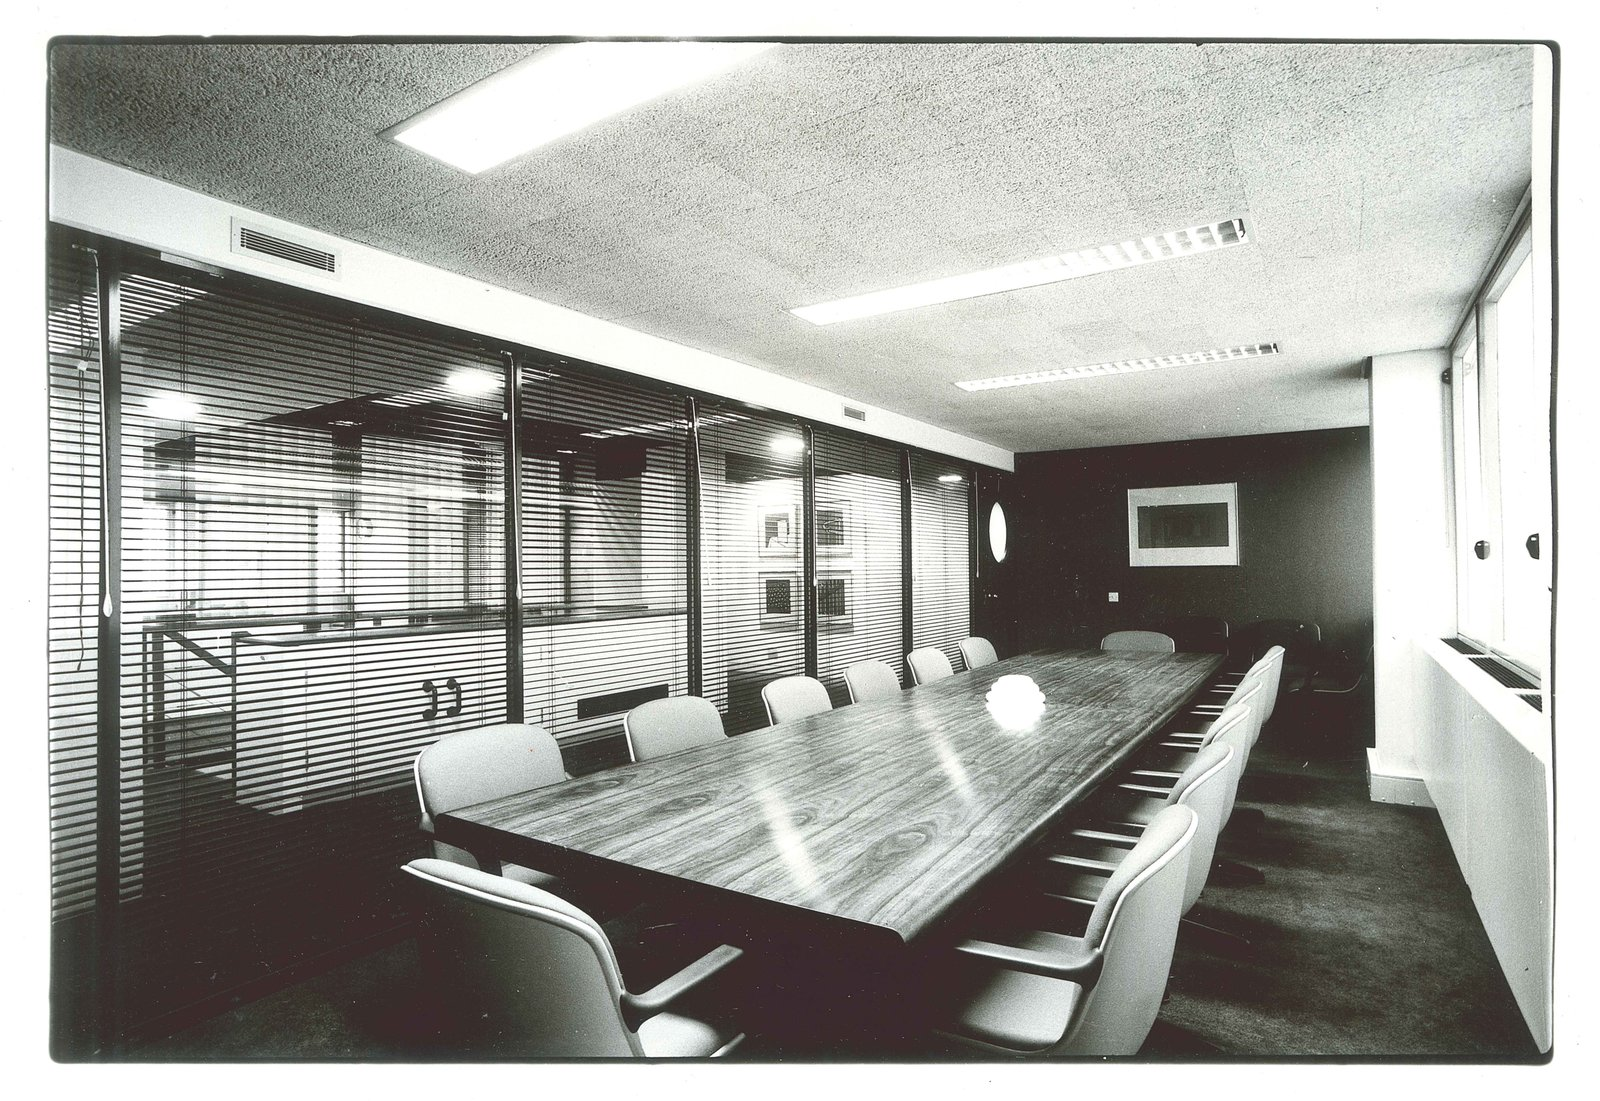 Booker McConnell Head Office  Completed in 1980, this interior overhaul was one of many Zeev Aram & Associates interior design projects.  Office